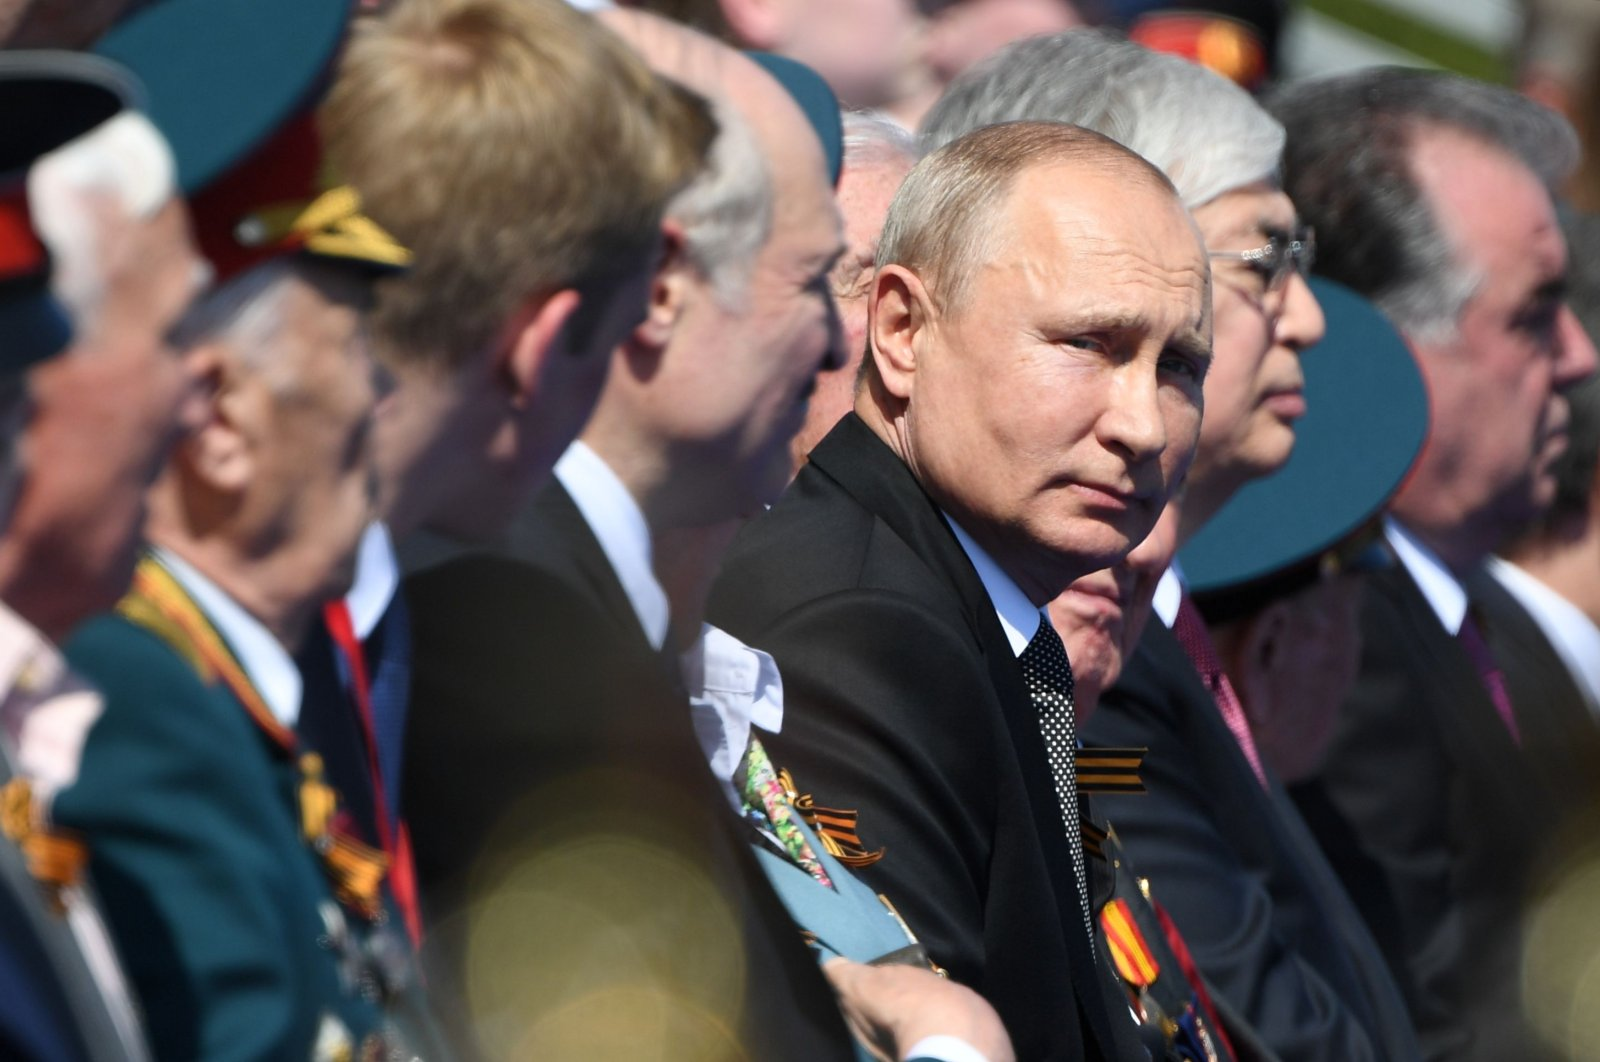 Russian President Vladimir Putin prior to a military parade, which marks the 75th anniversary of the Soviet victory over Nazi Germany in World War II, at Red Square in Moscow, June 24, 2020. (AFP Photo)